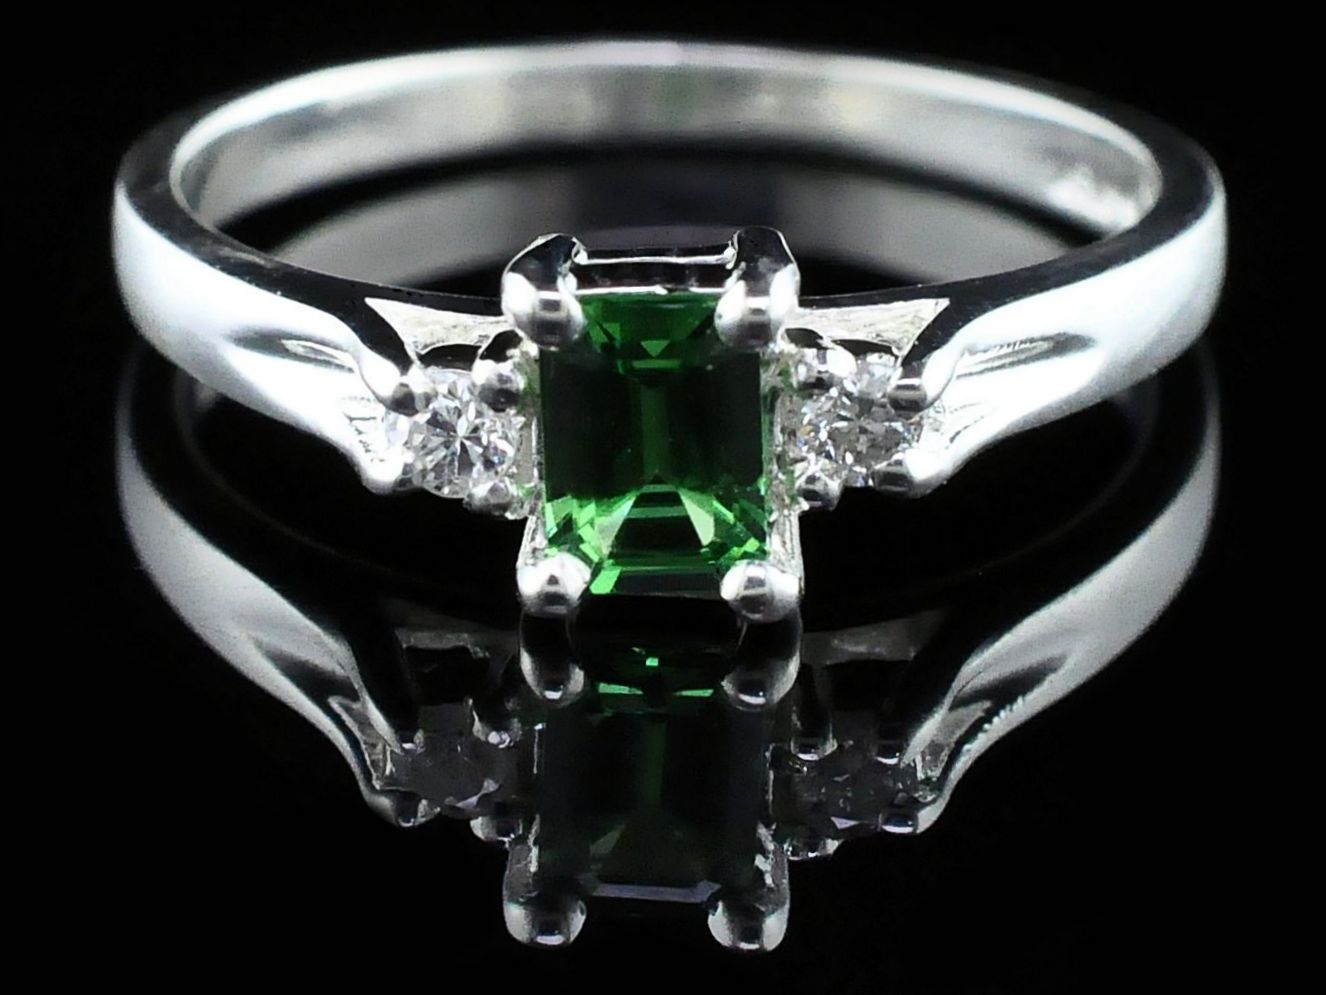 Silver Rings With Stones - Tsavorite Garnet And Diamond Three Stone Ring